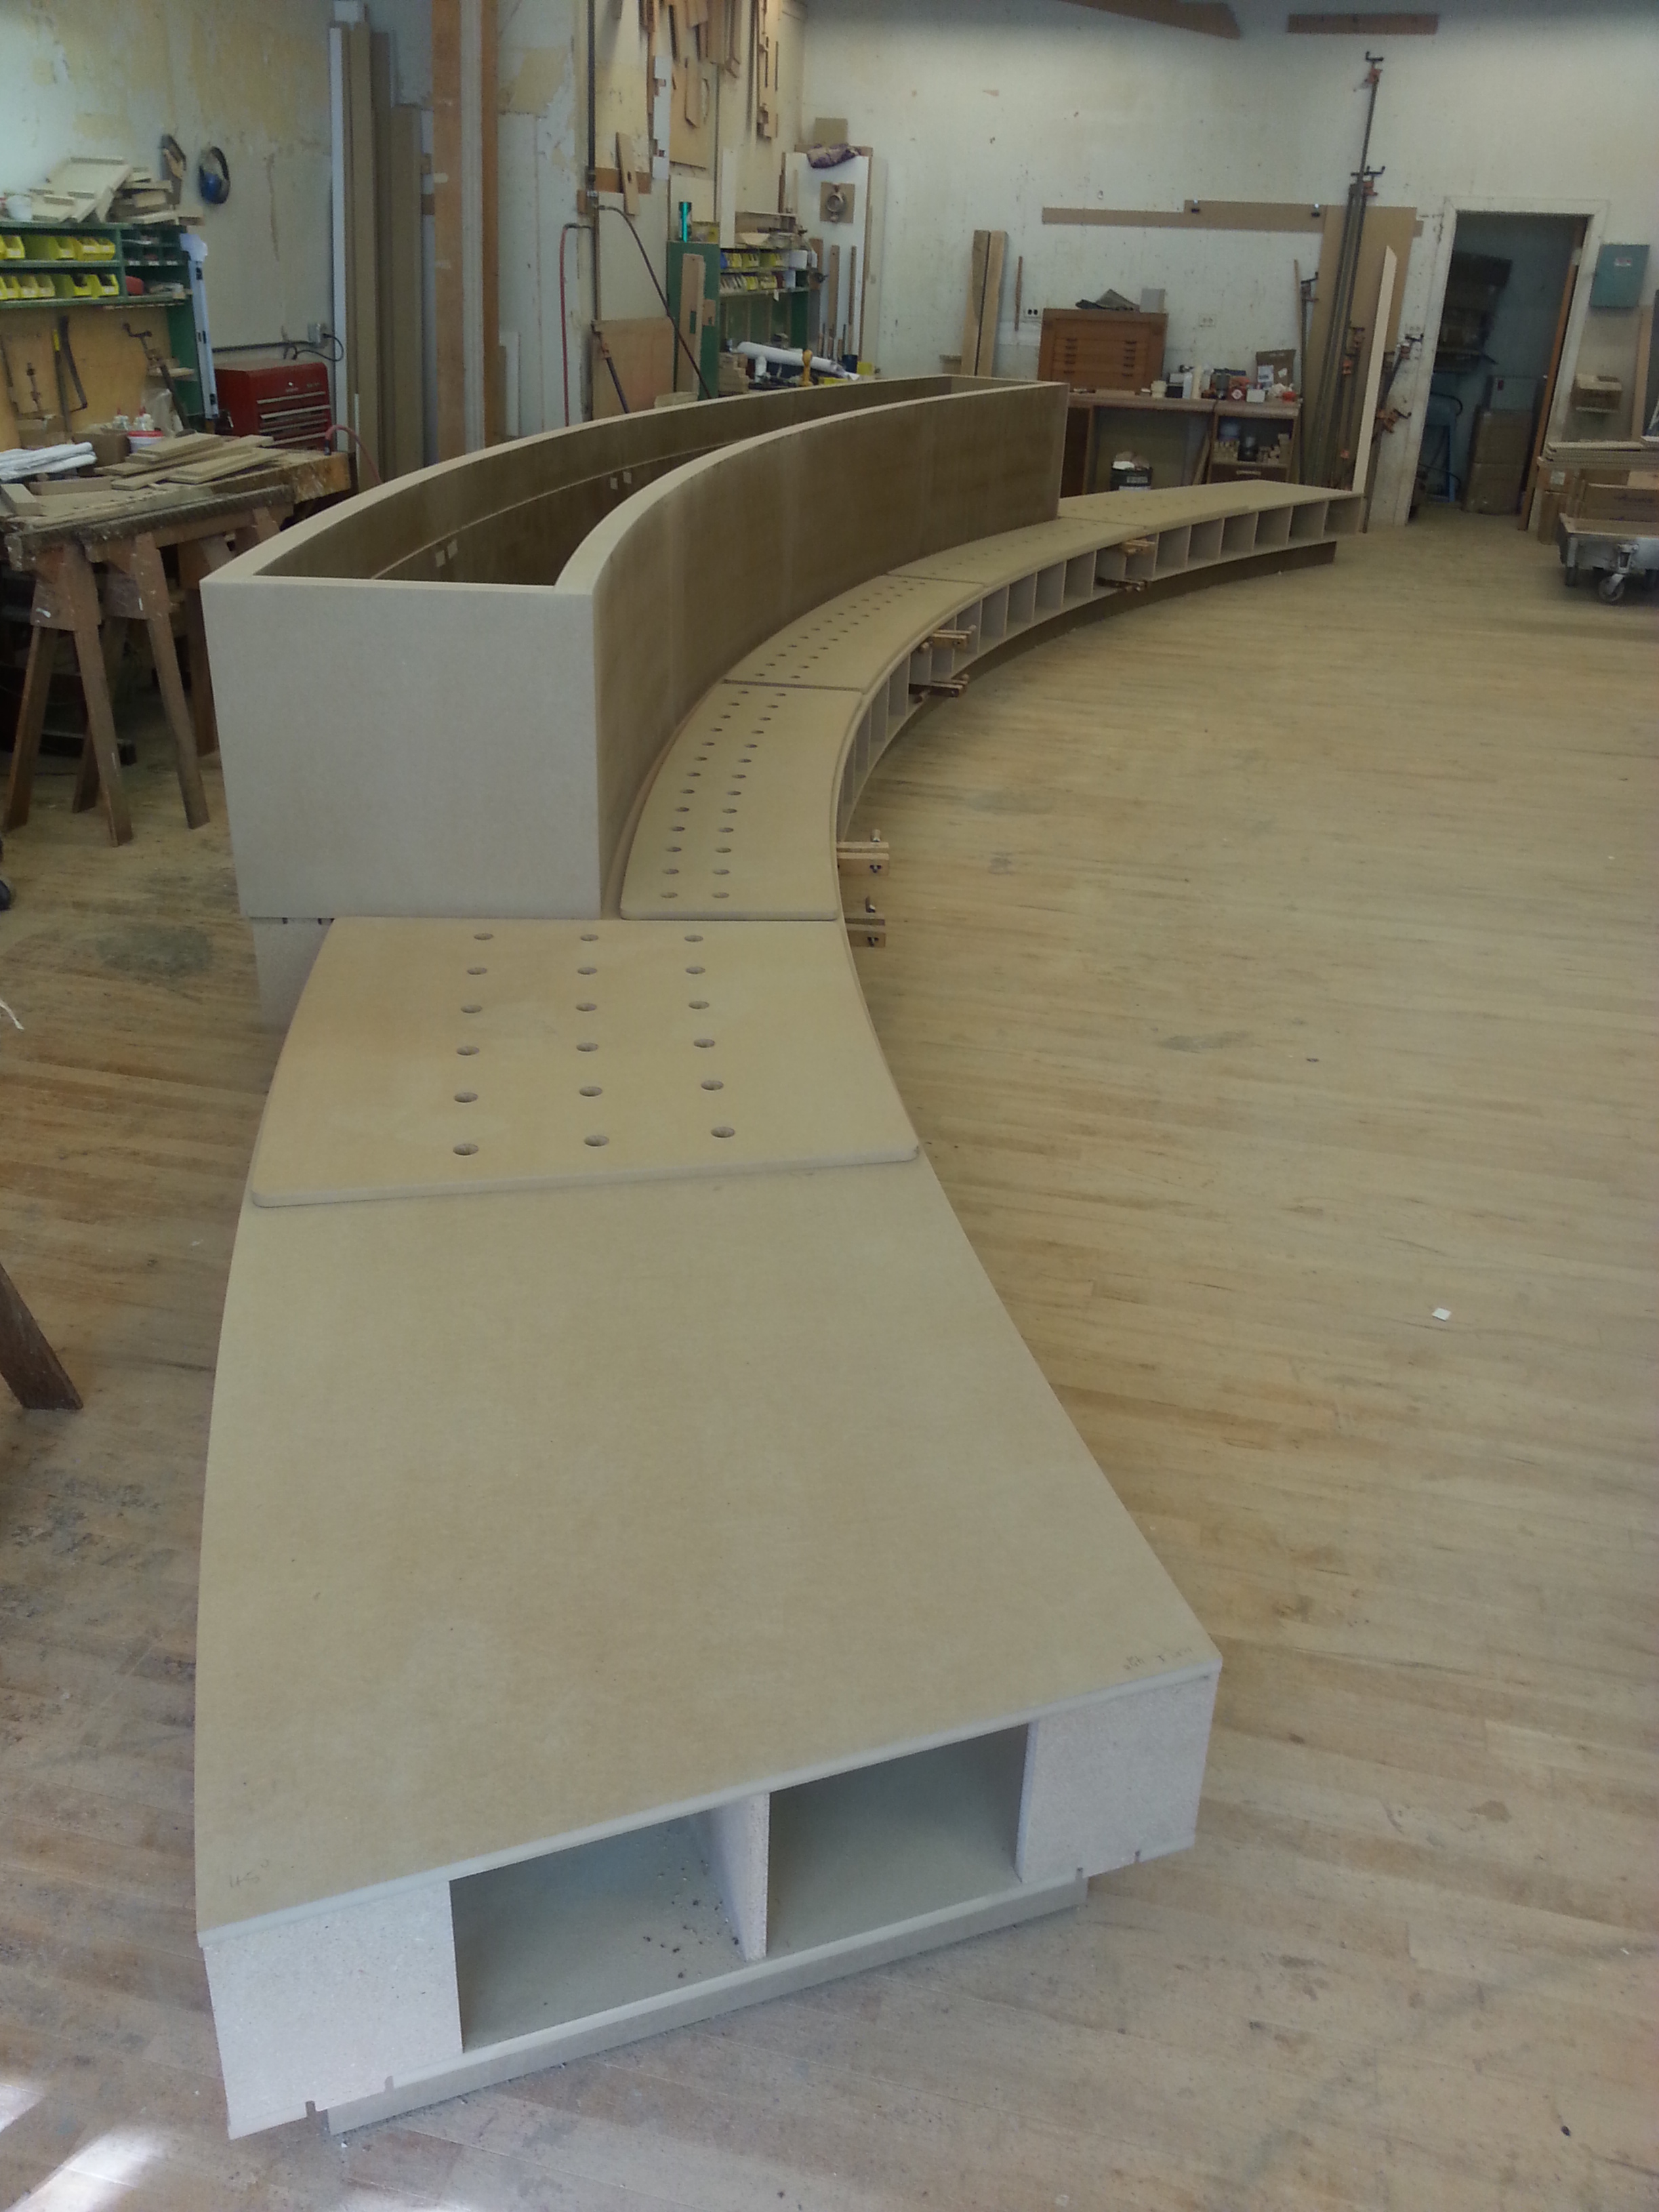 1 S Wacker Planter Seating In Progress #2